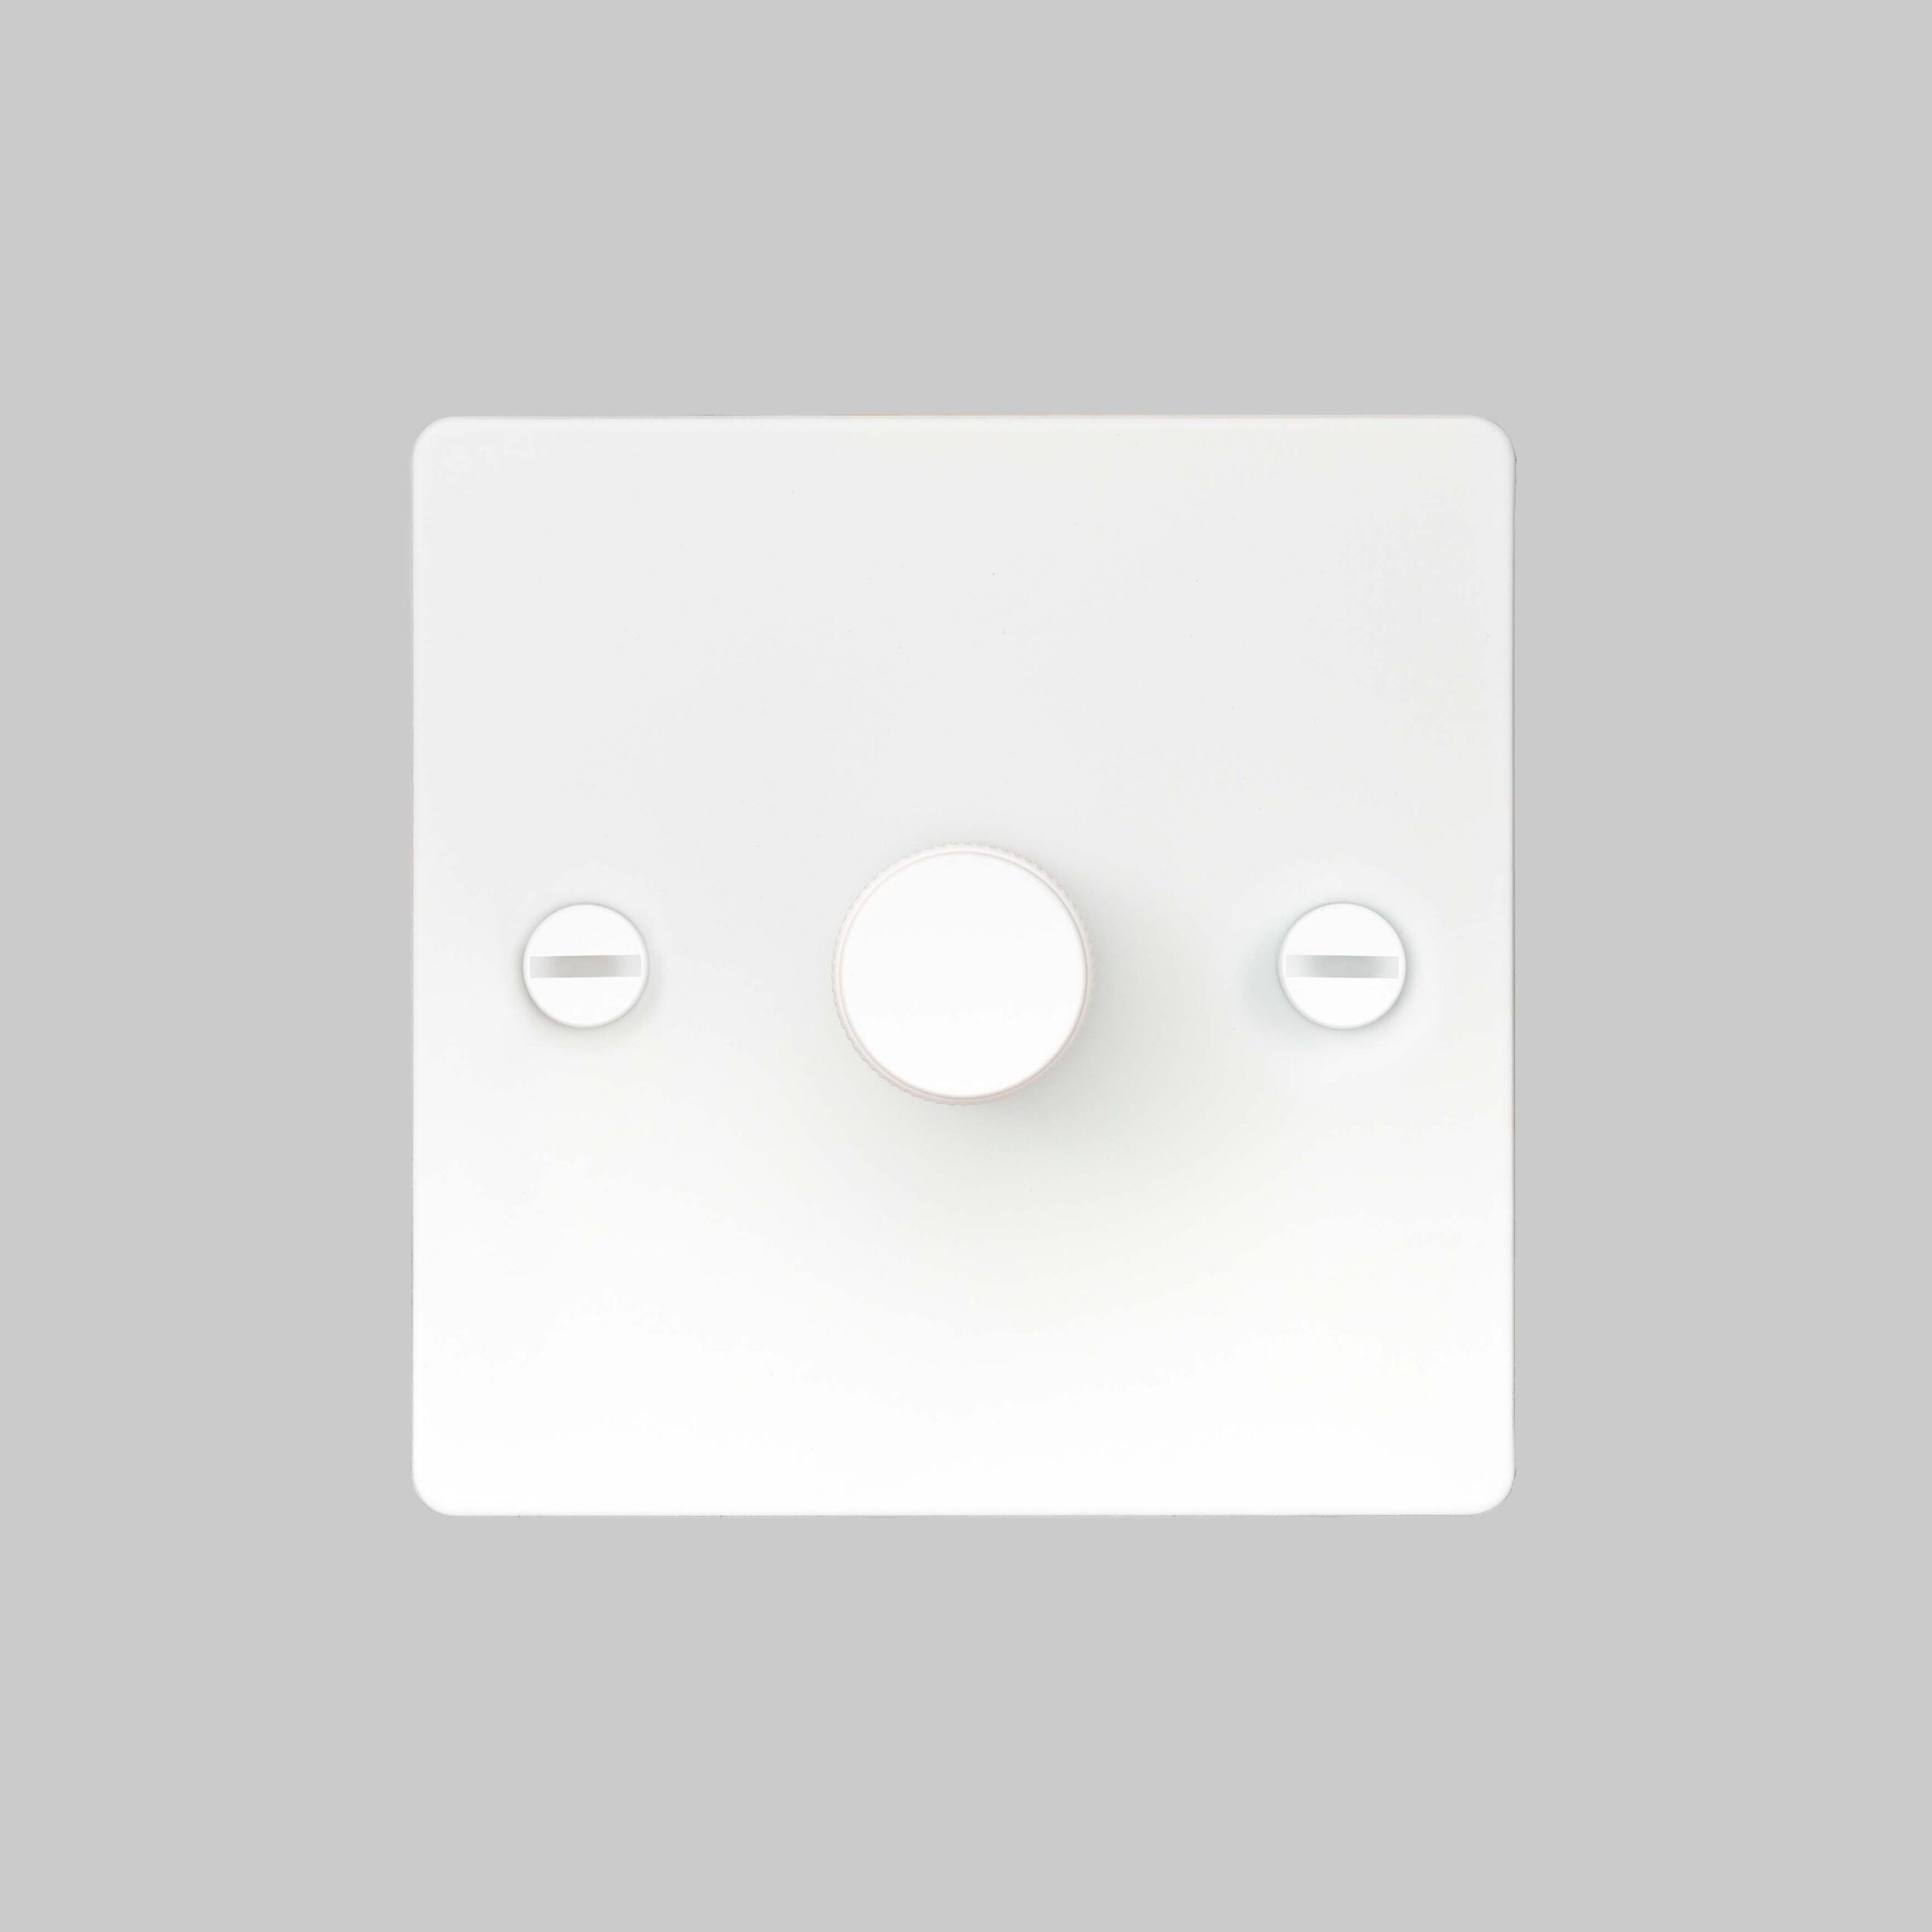 2. Buster+Punch_1G_Dimmer_Front_White